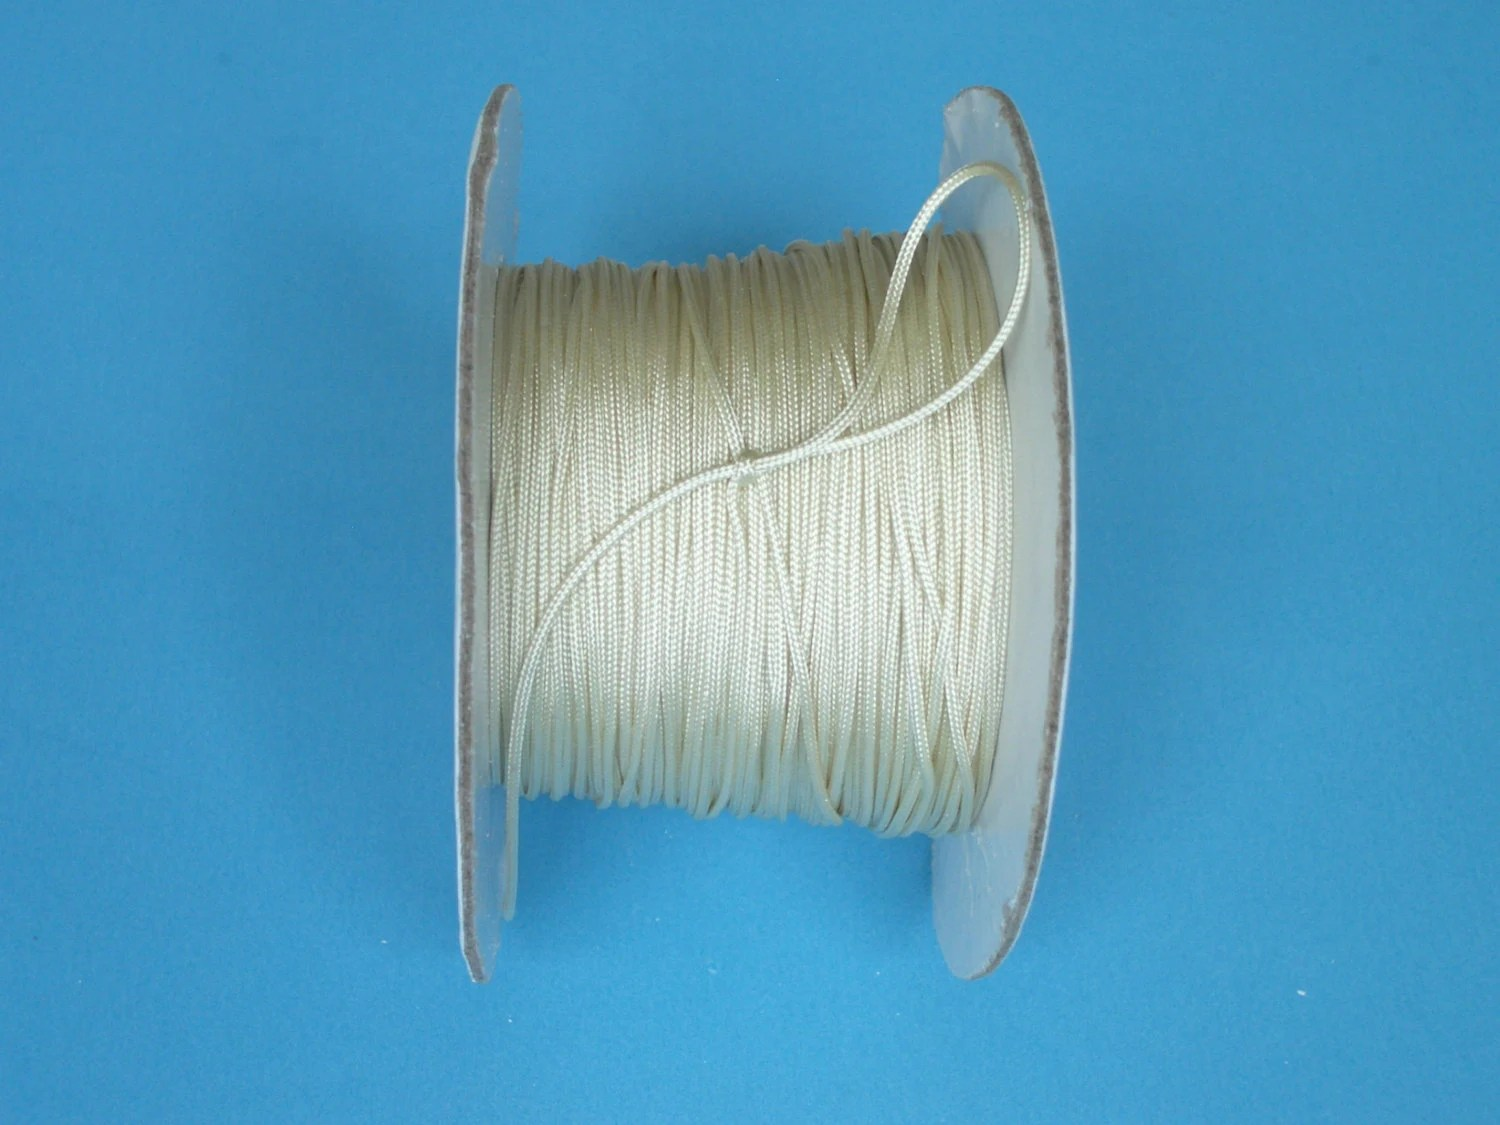 Lift Cord 9mm For Roman Shades And Other Window Treatments